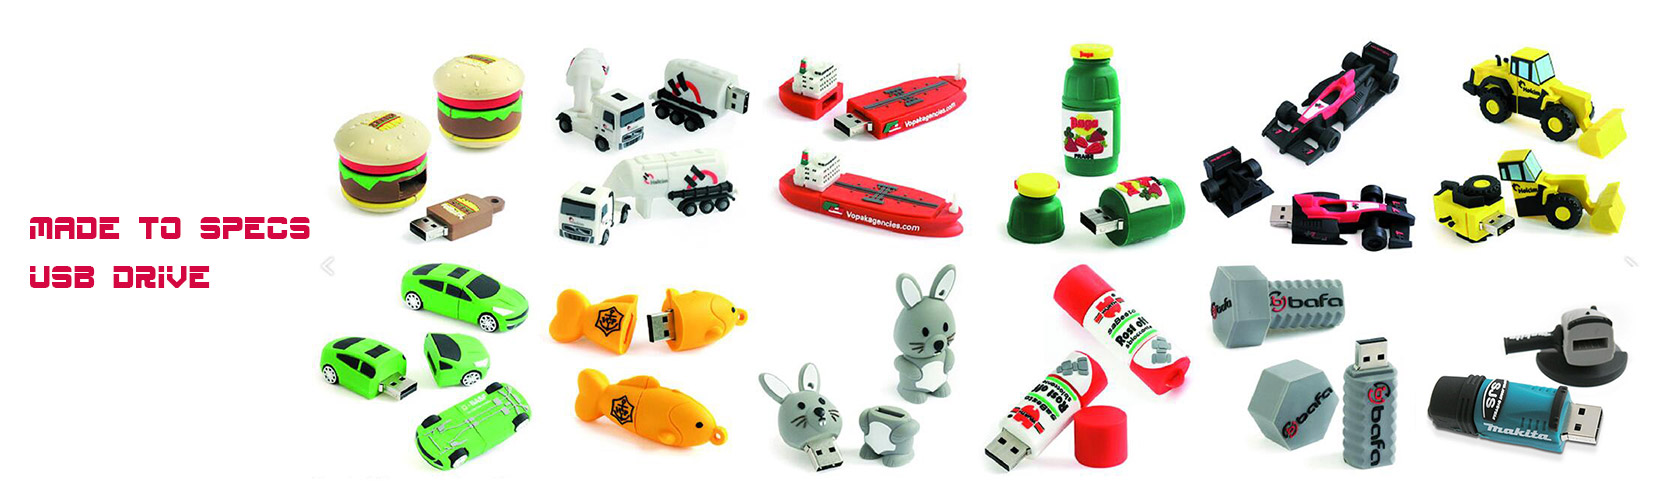 customized pvc USB Flash Drives and USB hubs for premium gifts or corporate gifts